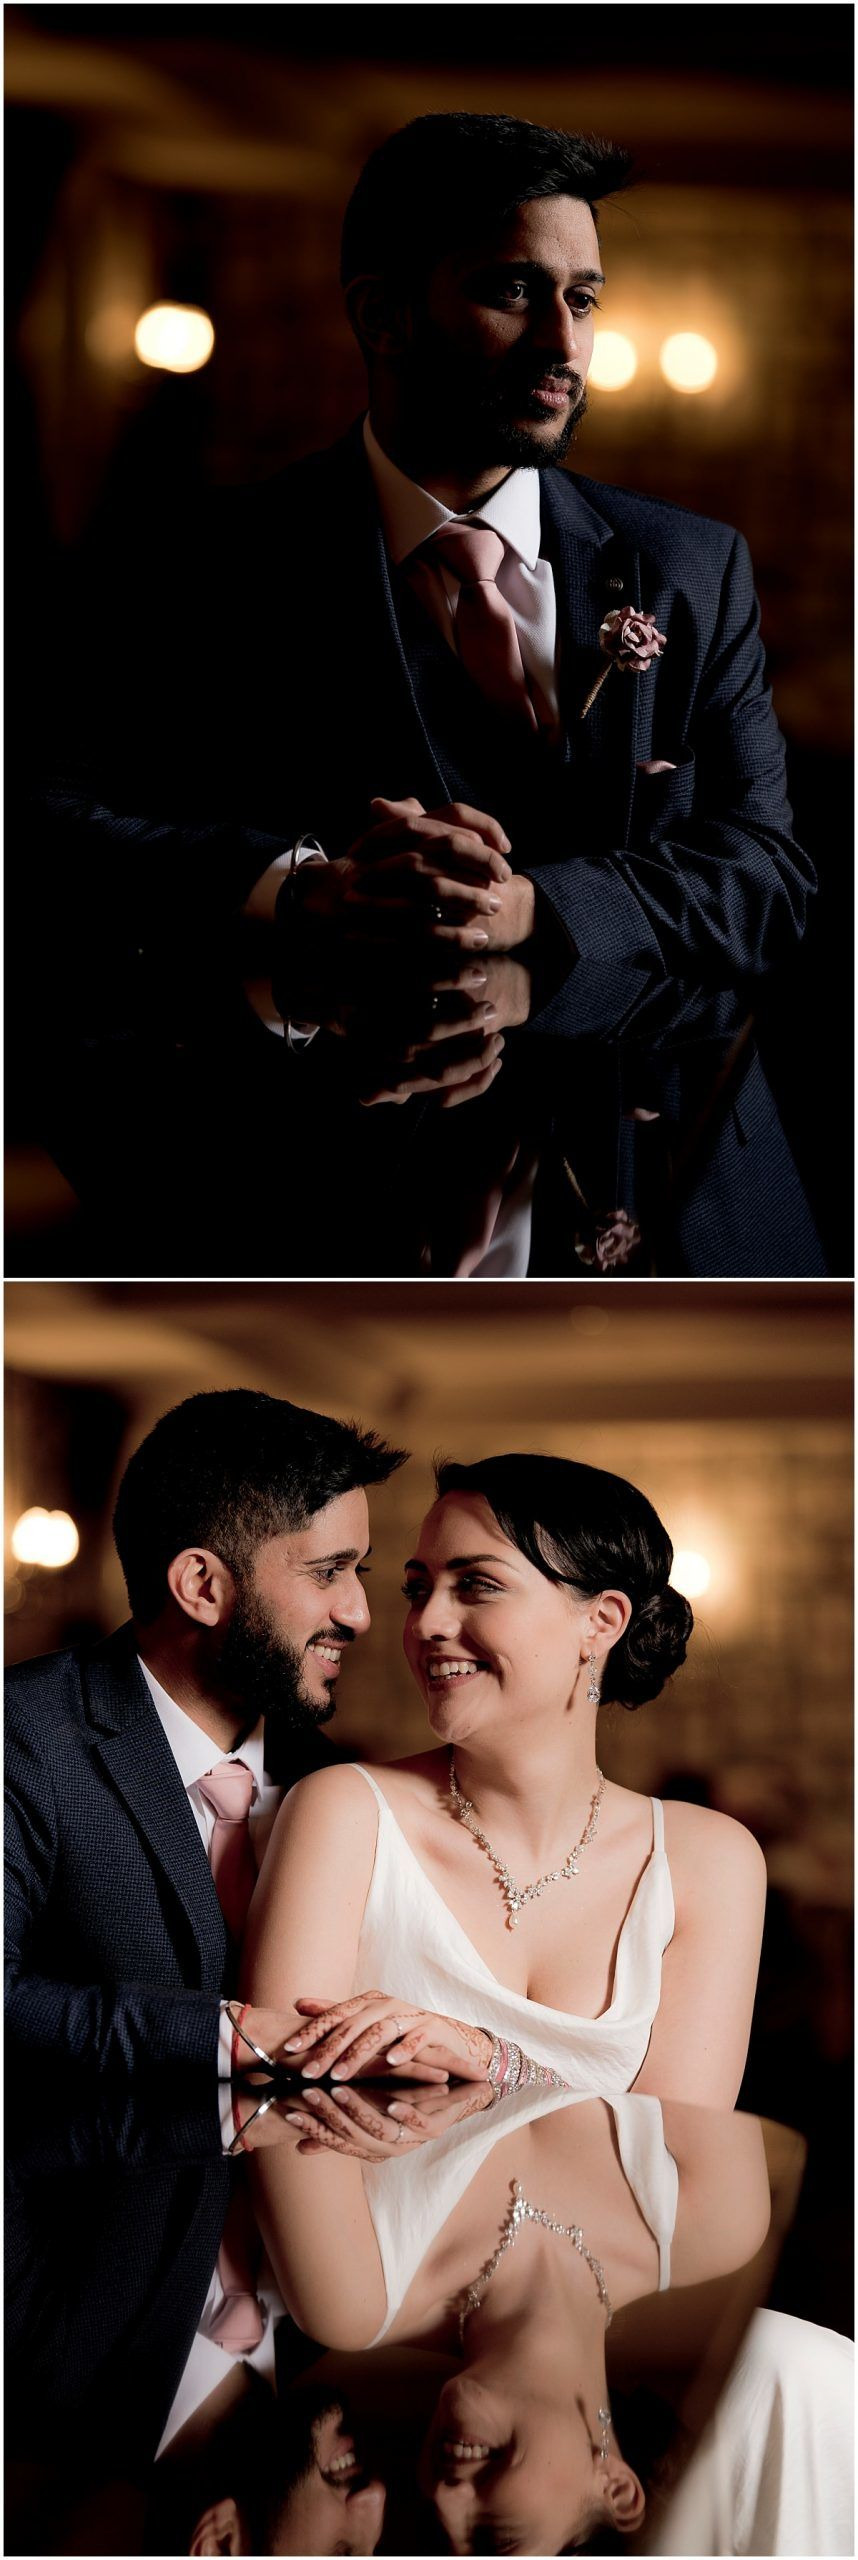 Asian Wedding Photography in Nottingham & Derby